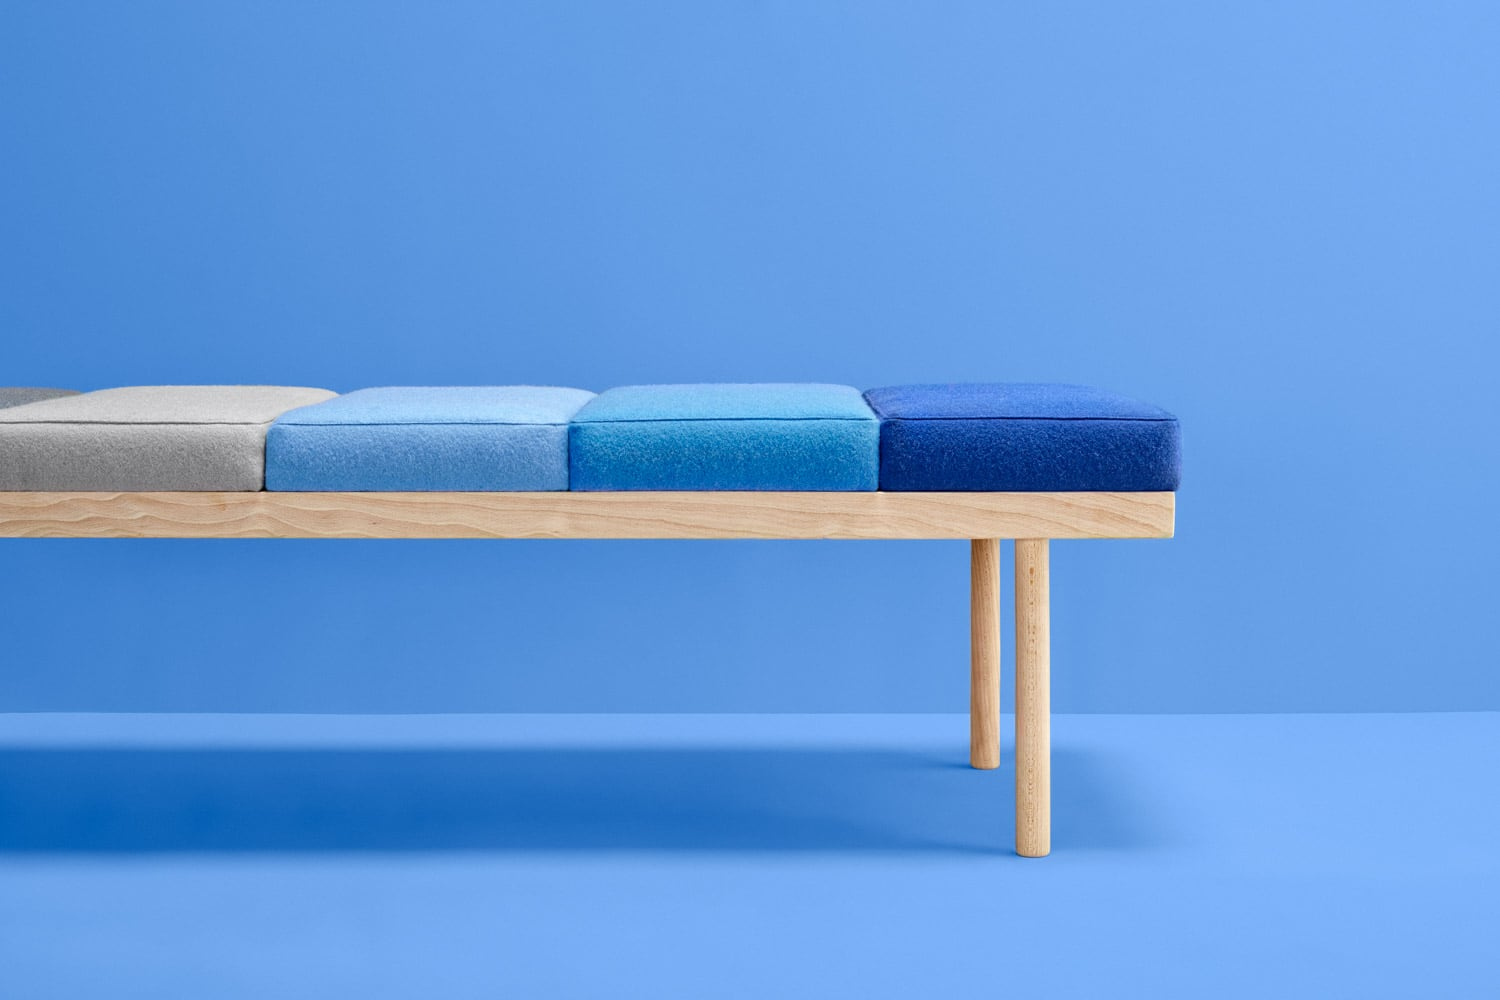 valentino-bench-contract-hospitality-design-product-interior